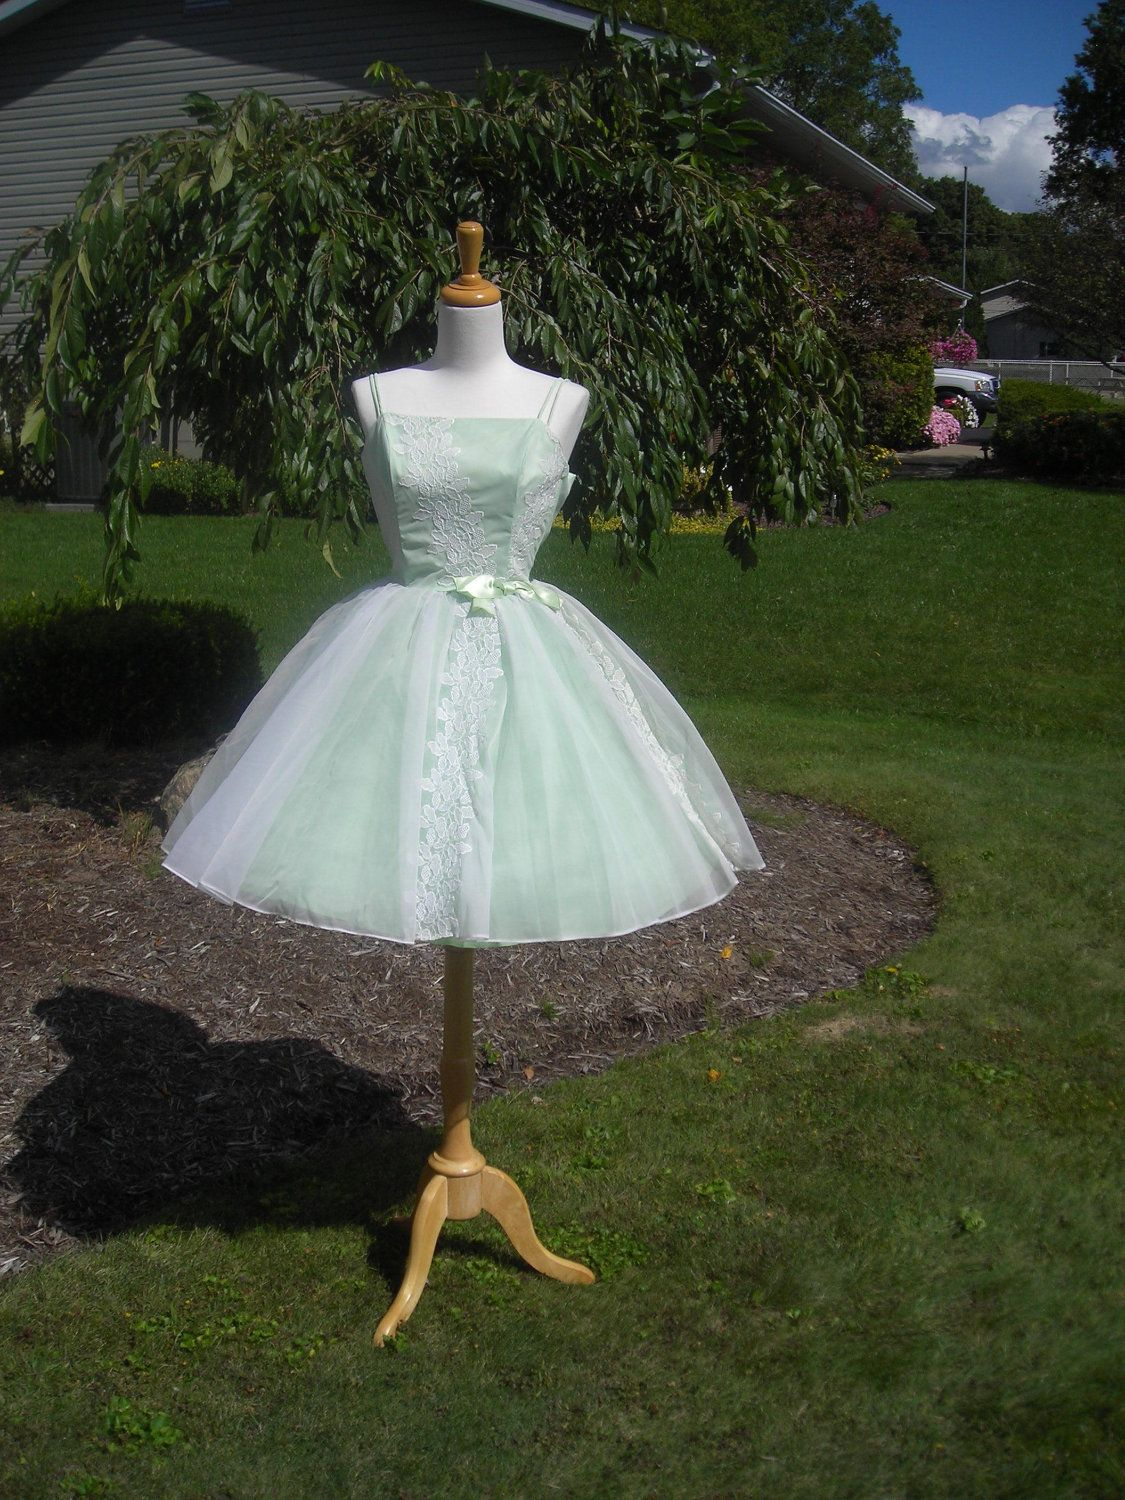 Us prom dress pale mint green double spaghetti straps xs